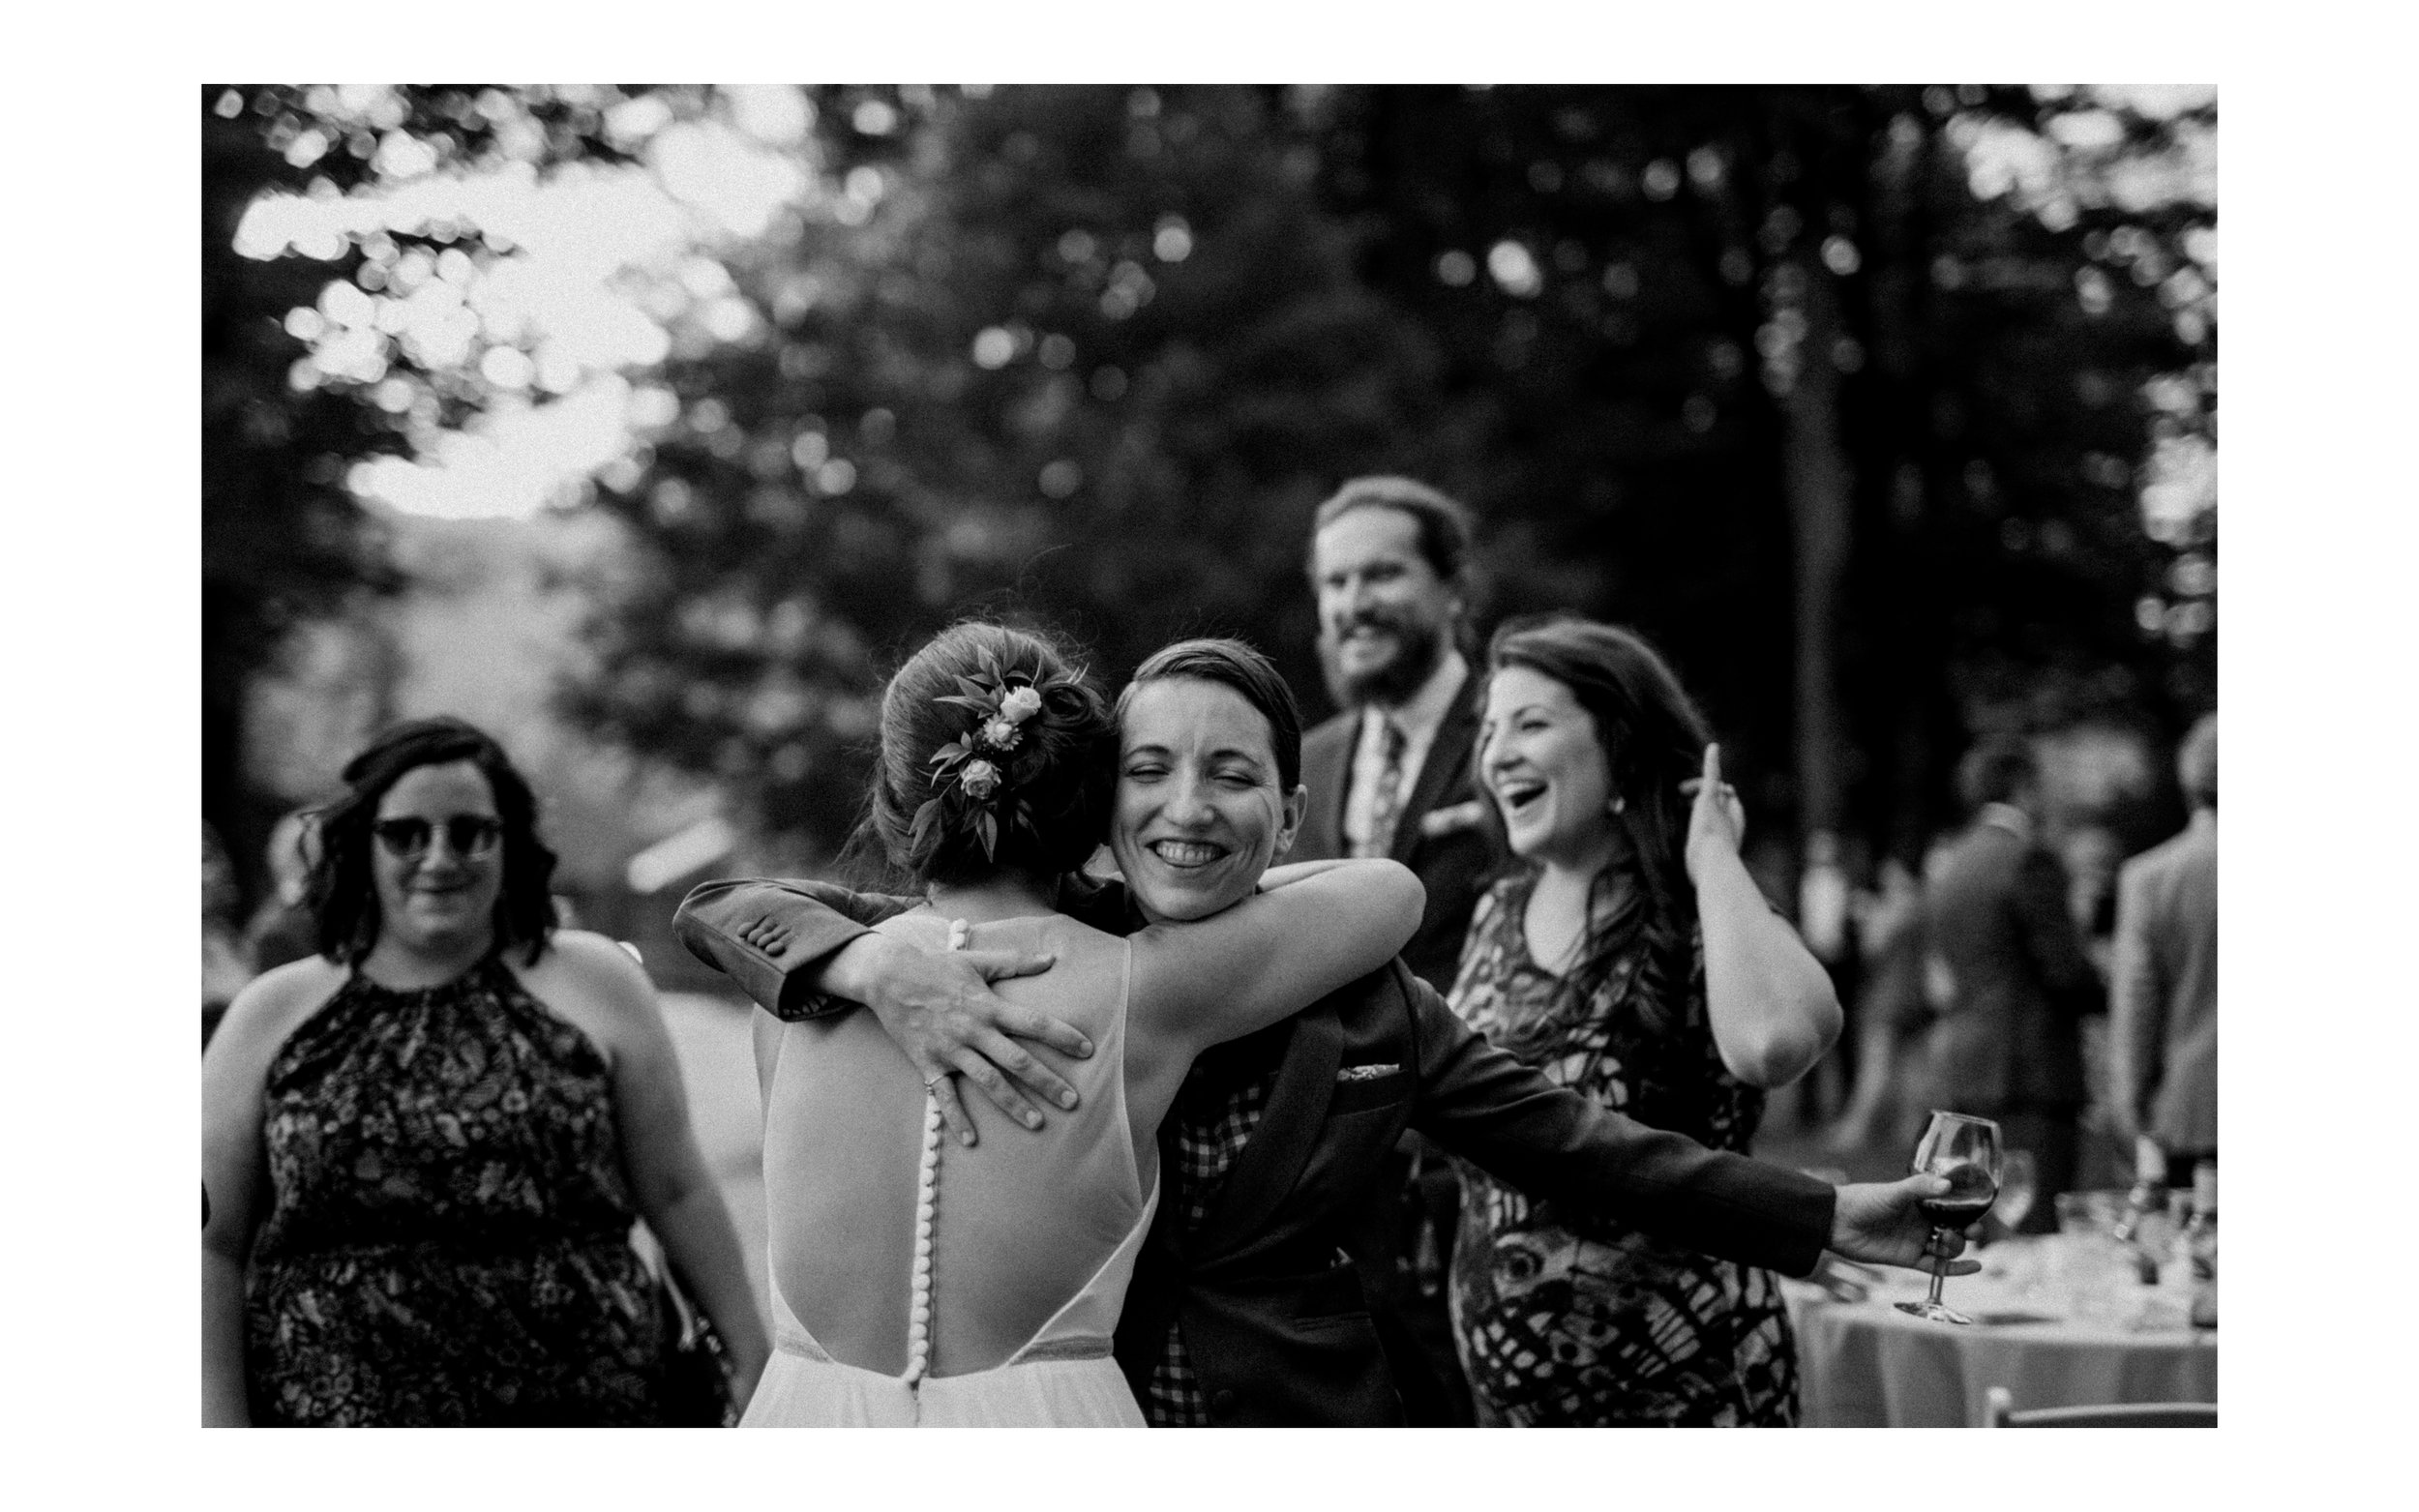 Berkshires Wedding Fine Art Wedding Photographer_Meg Haley Photographs_028.jpg